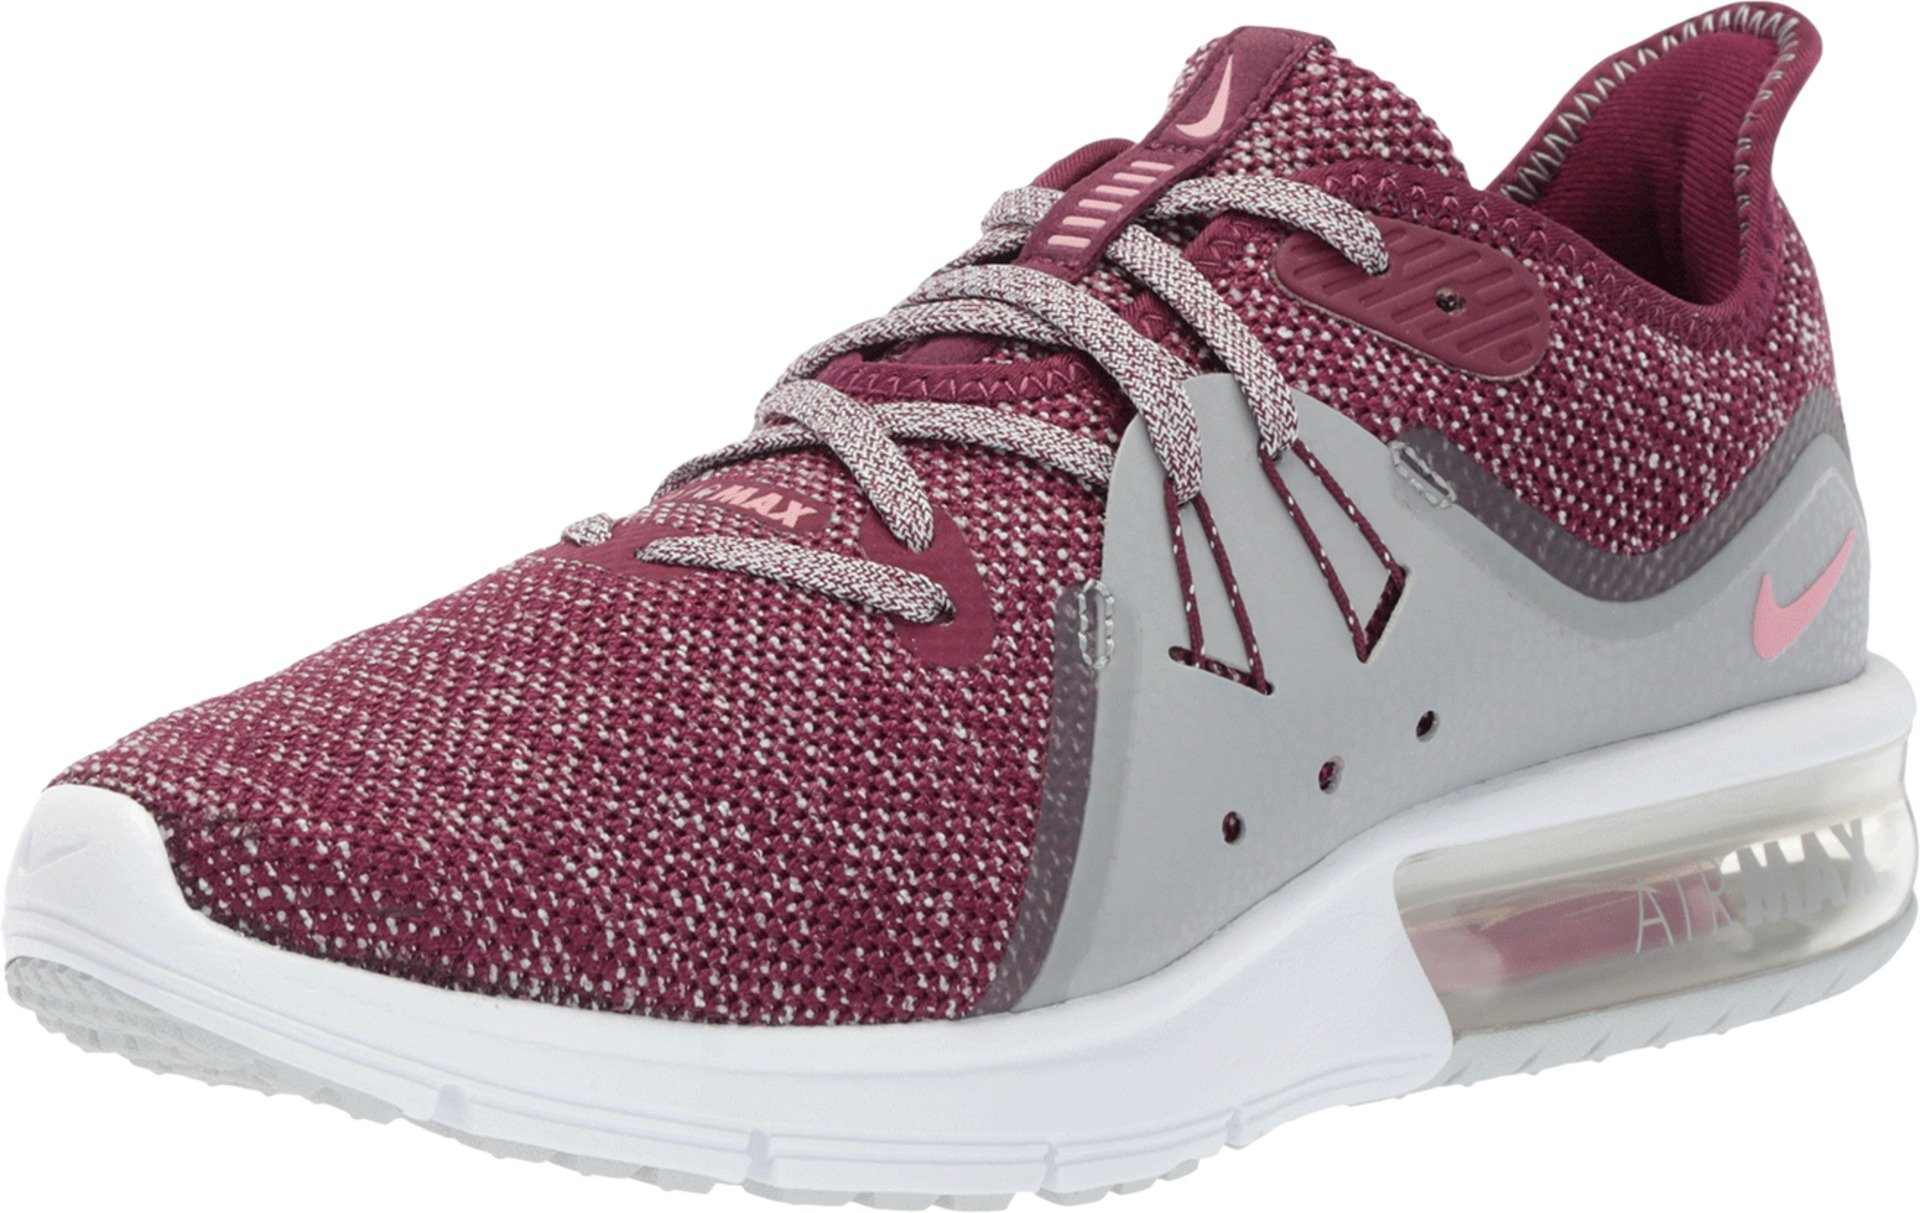 b9ad93af4f100 Nike Air Max Sequent 3 Womens Style : 908993 Womens 908993-606 Size 12